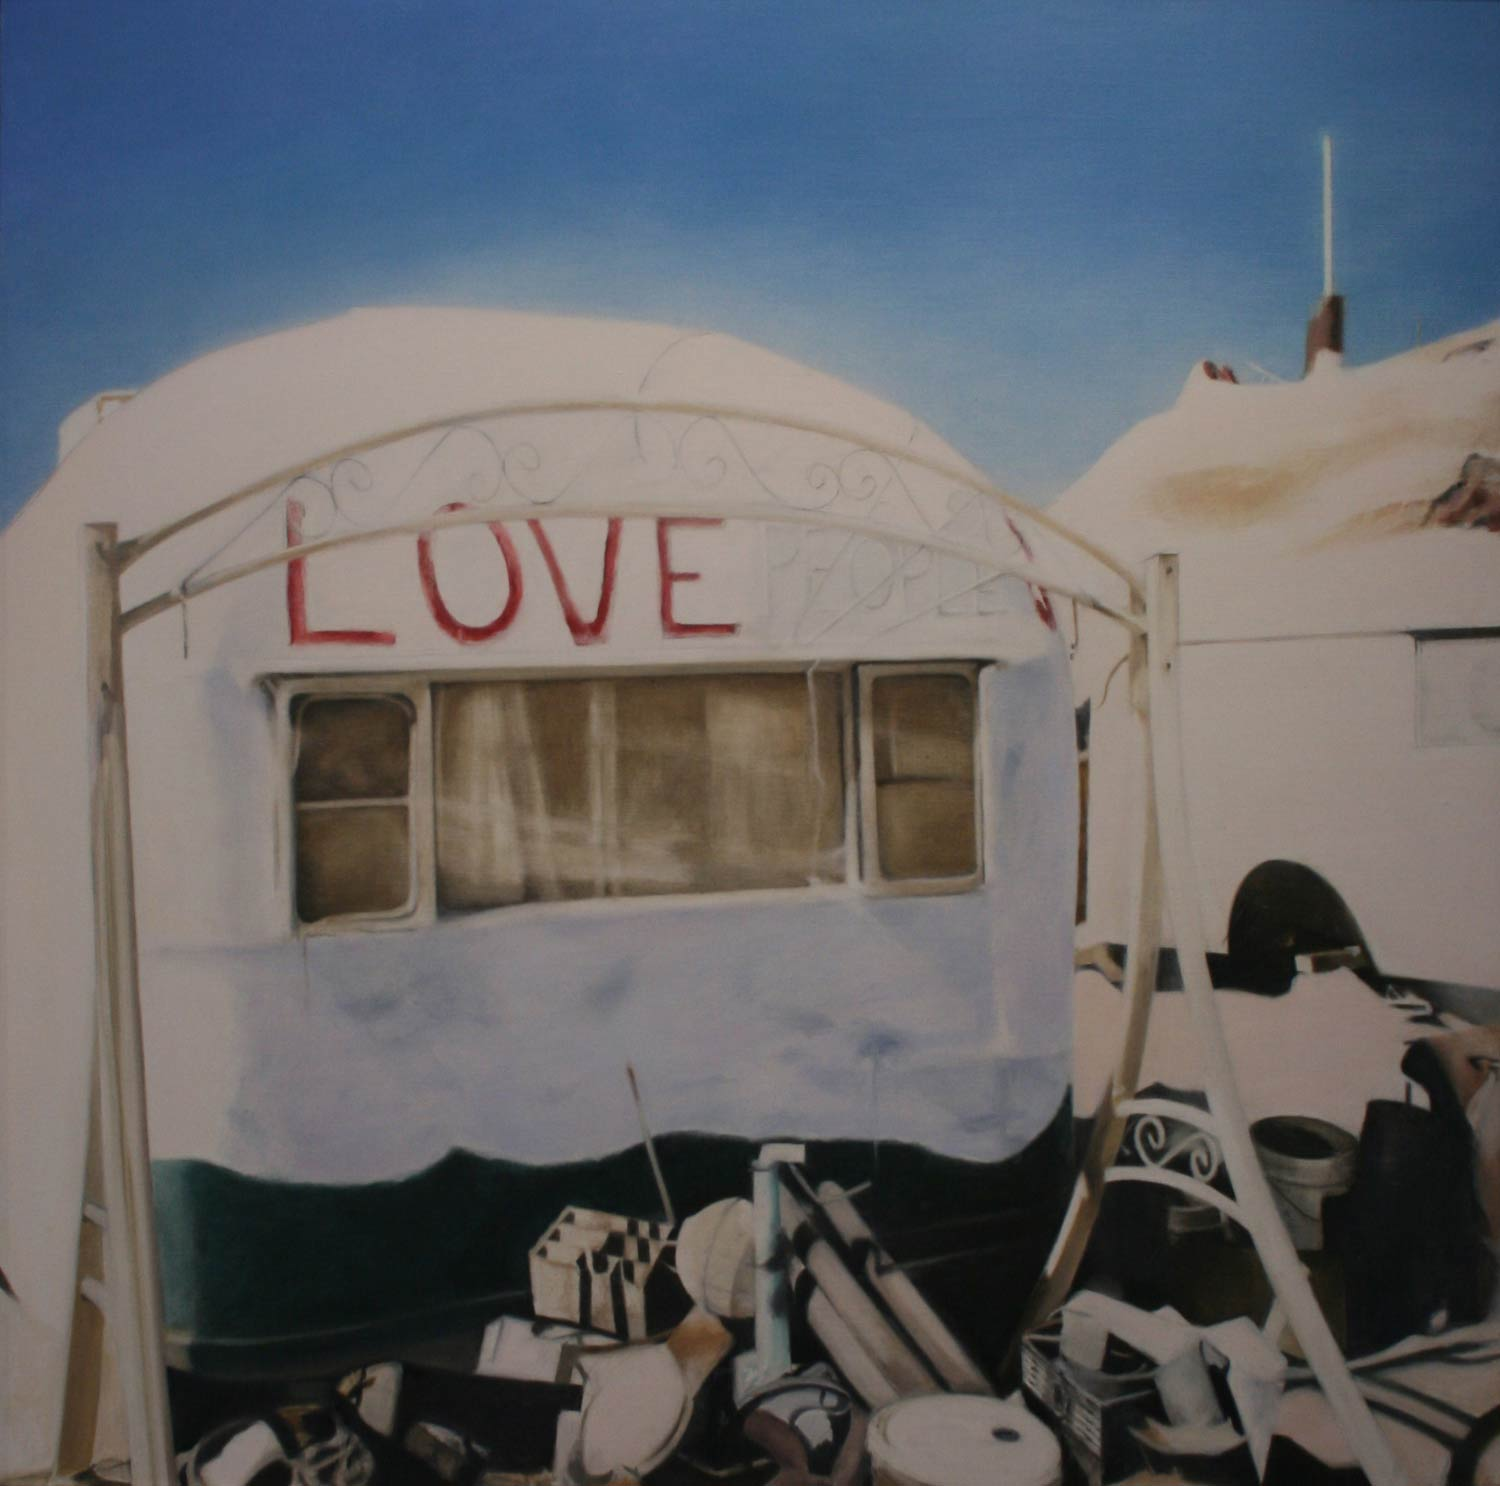 Home on the Strange: In Search of the Salton Sea, Love, 2009, oil on canvas, 36 by 36 inches